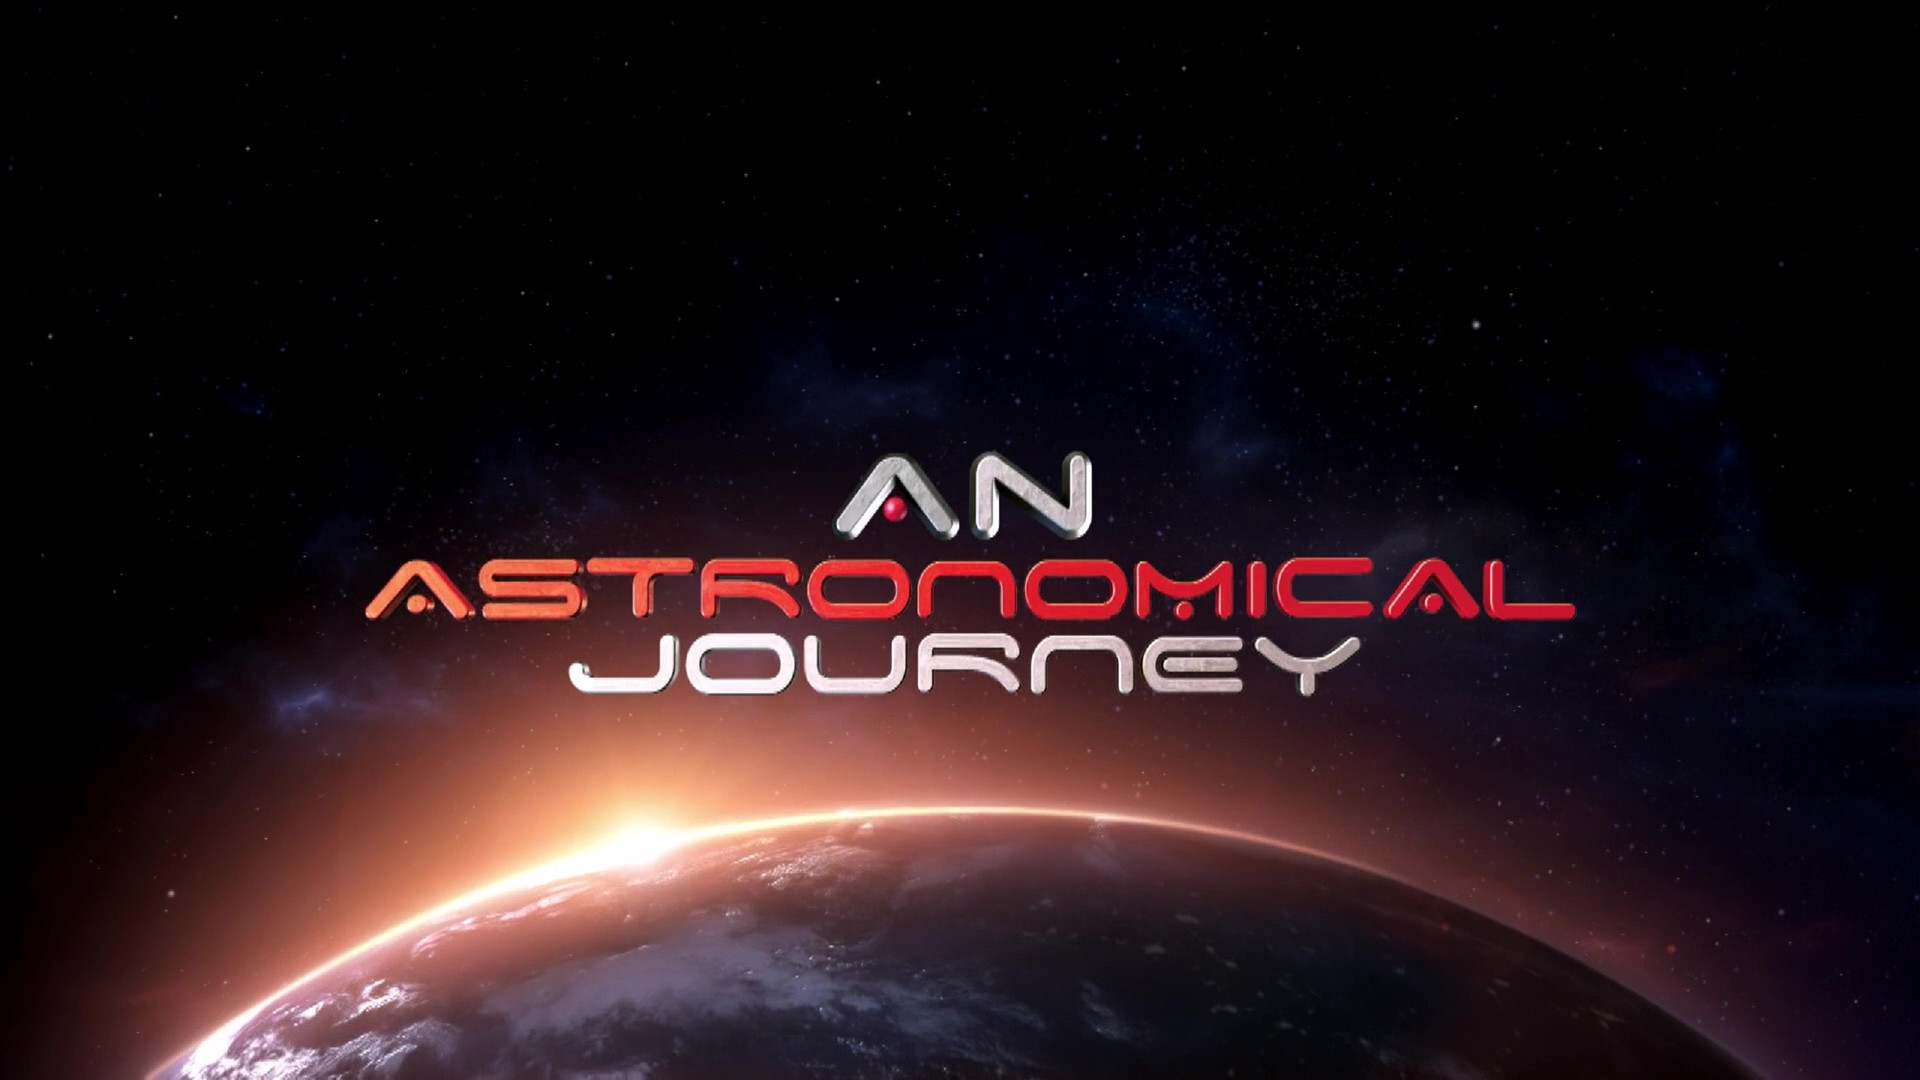 An Astronomical Journey